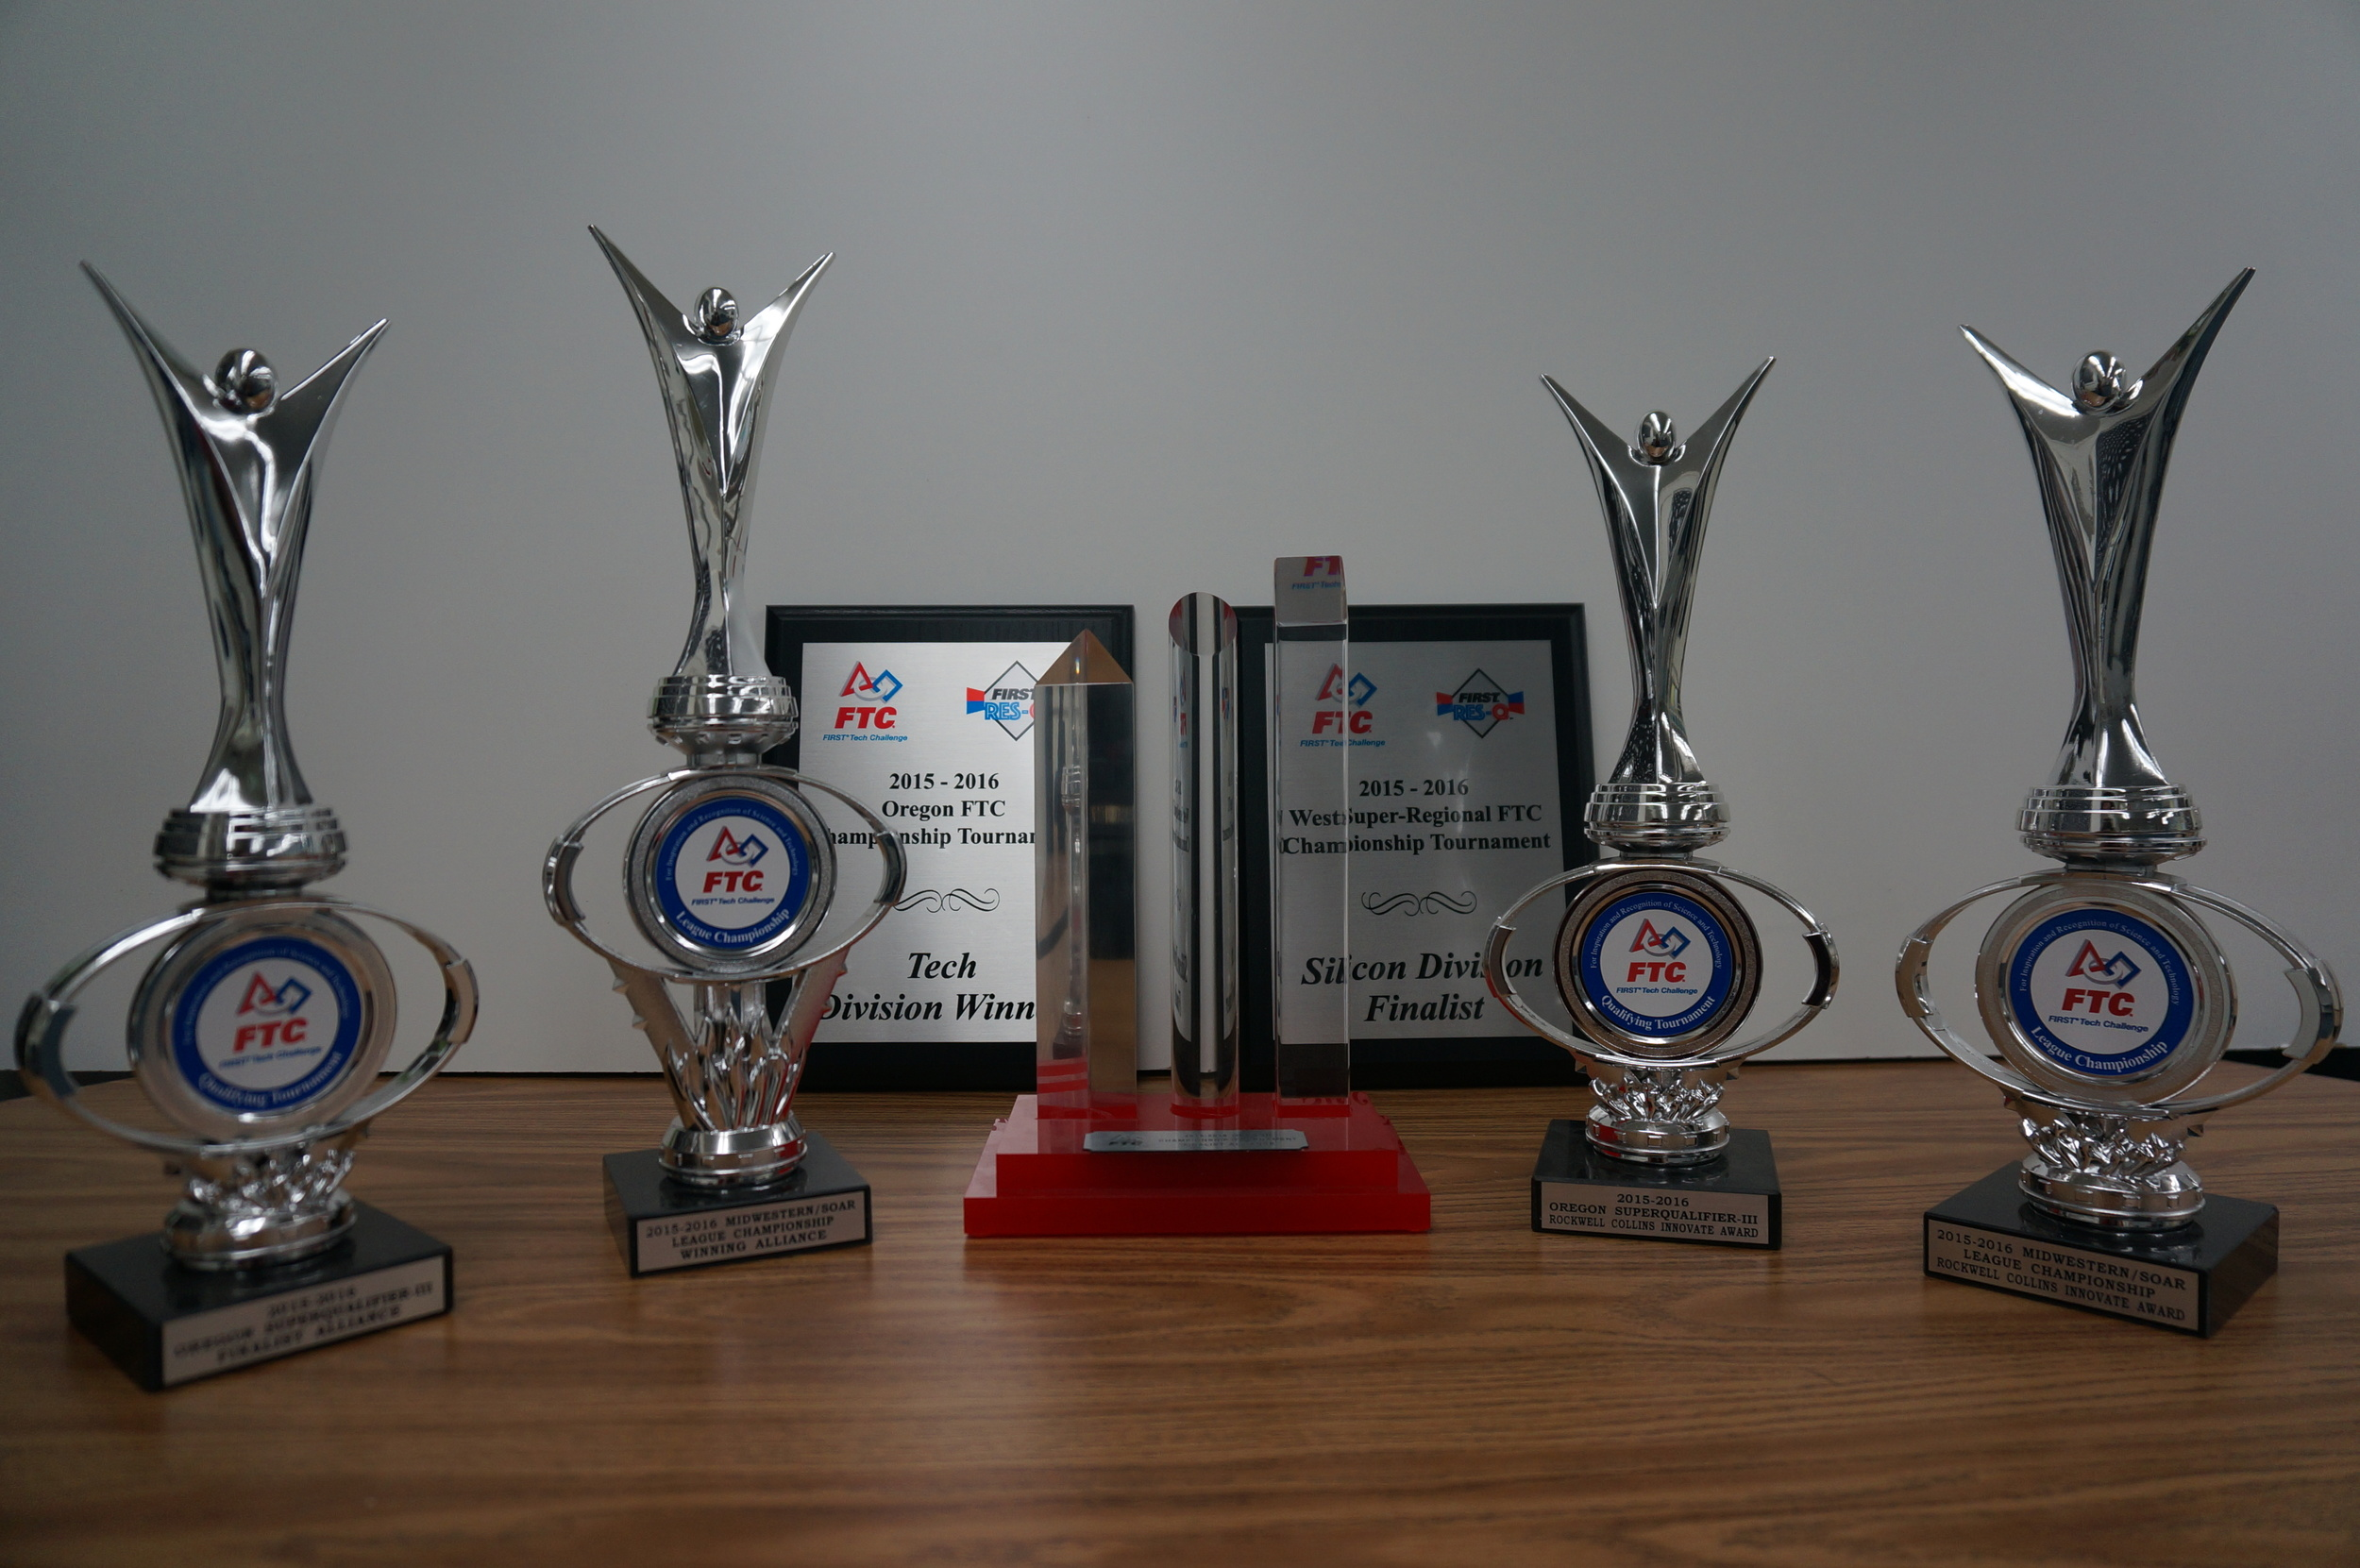 All awards from the 2015-2016 season